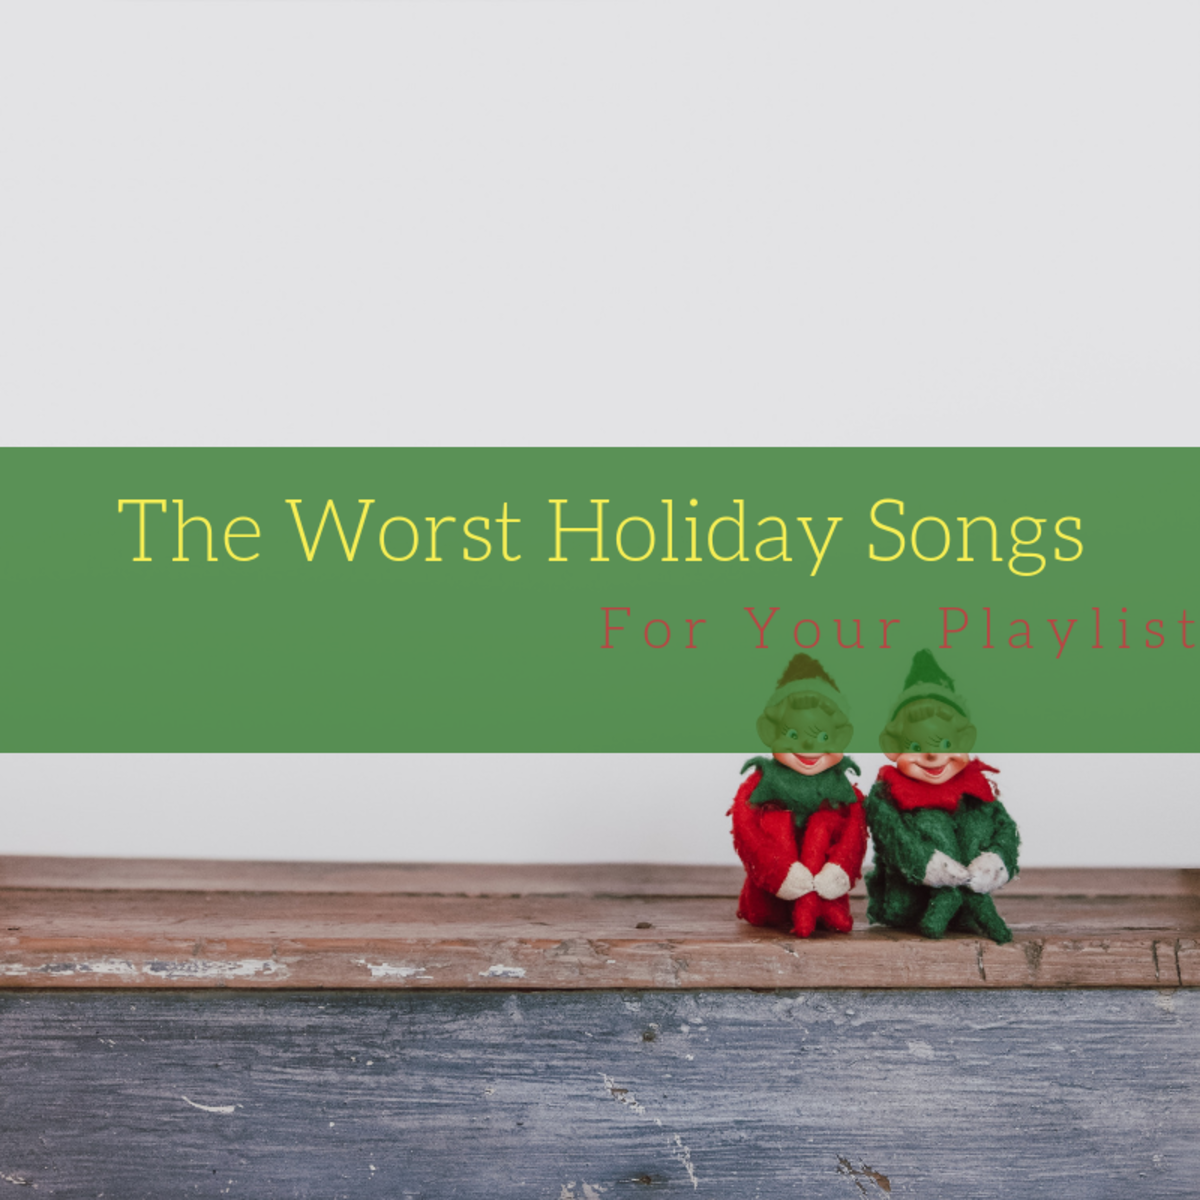 The 12 Worst Christmas Songs for Your Holiday Playlist